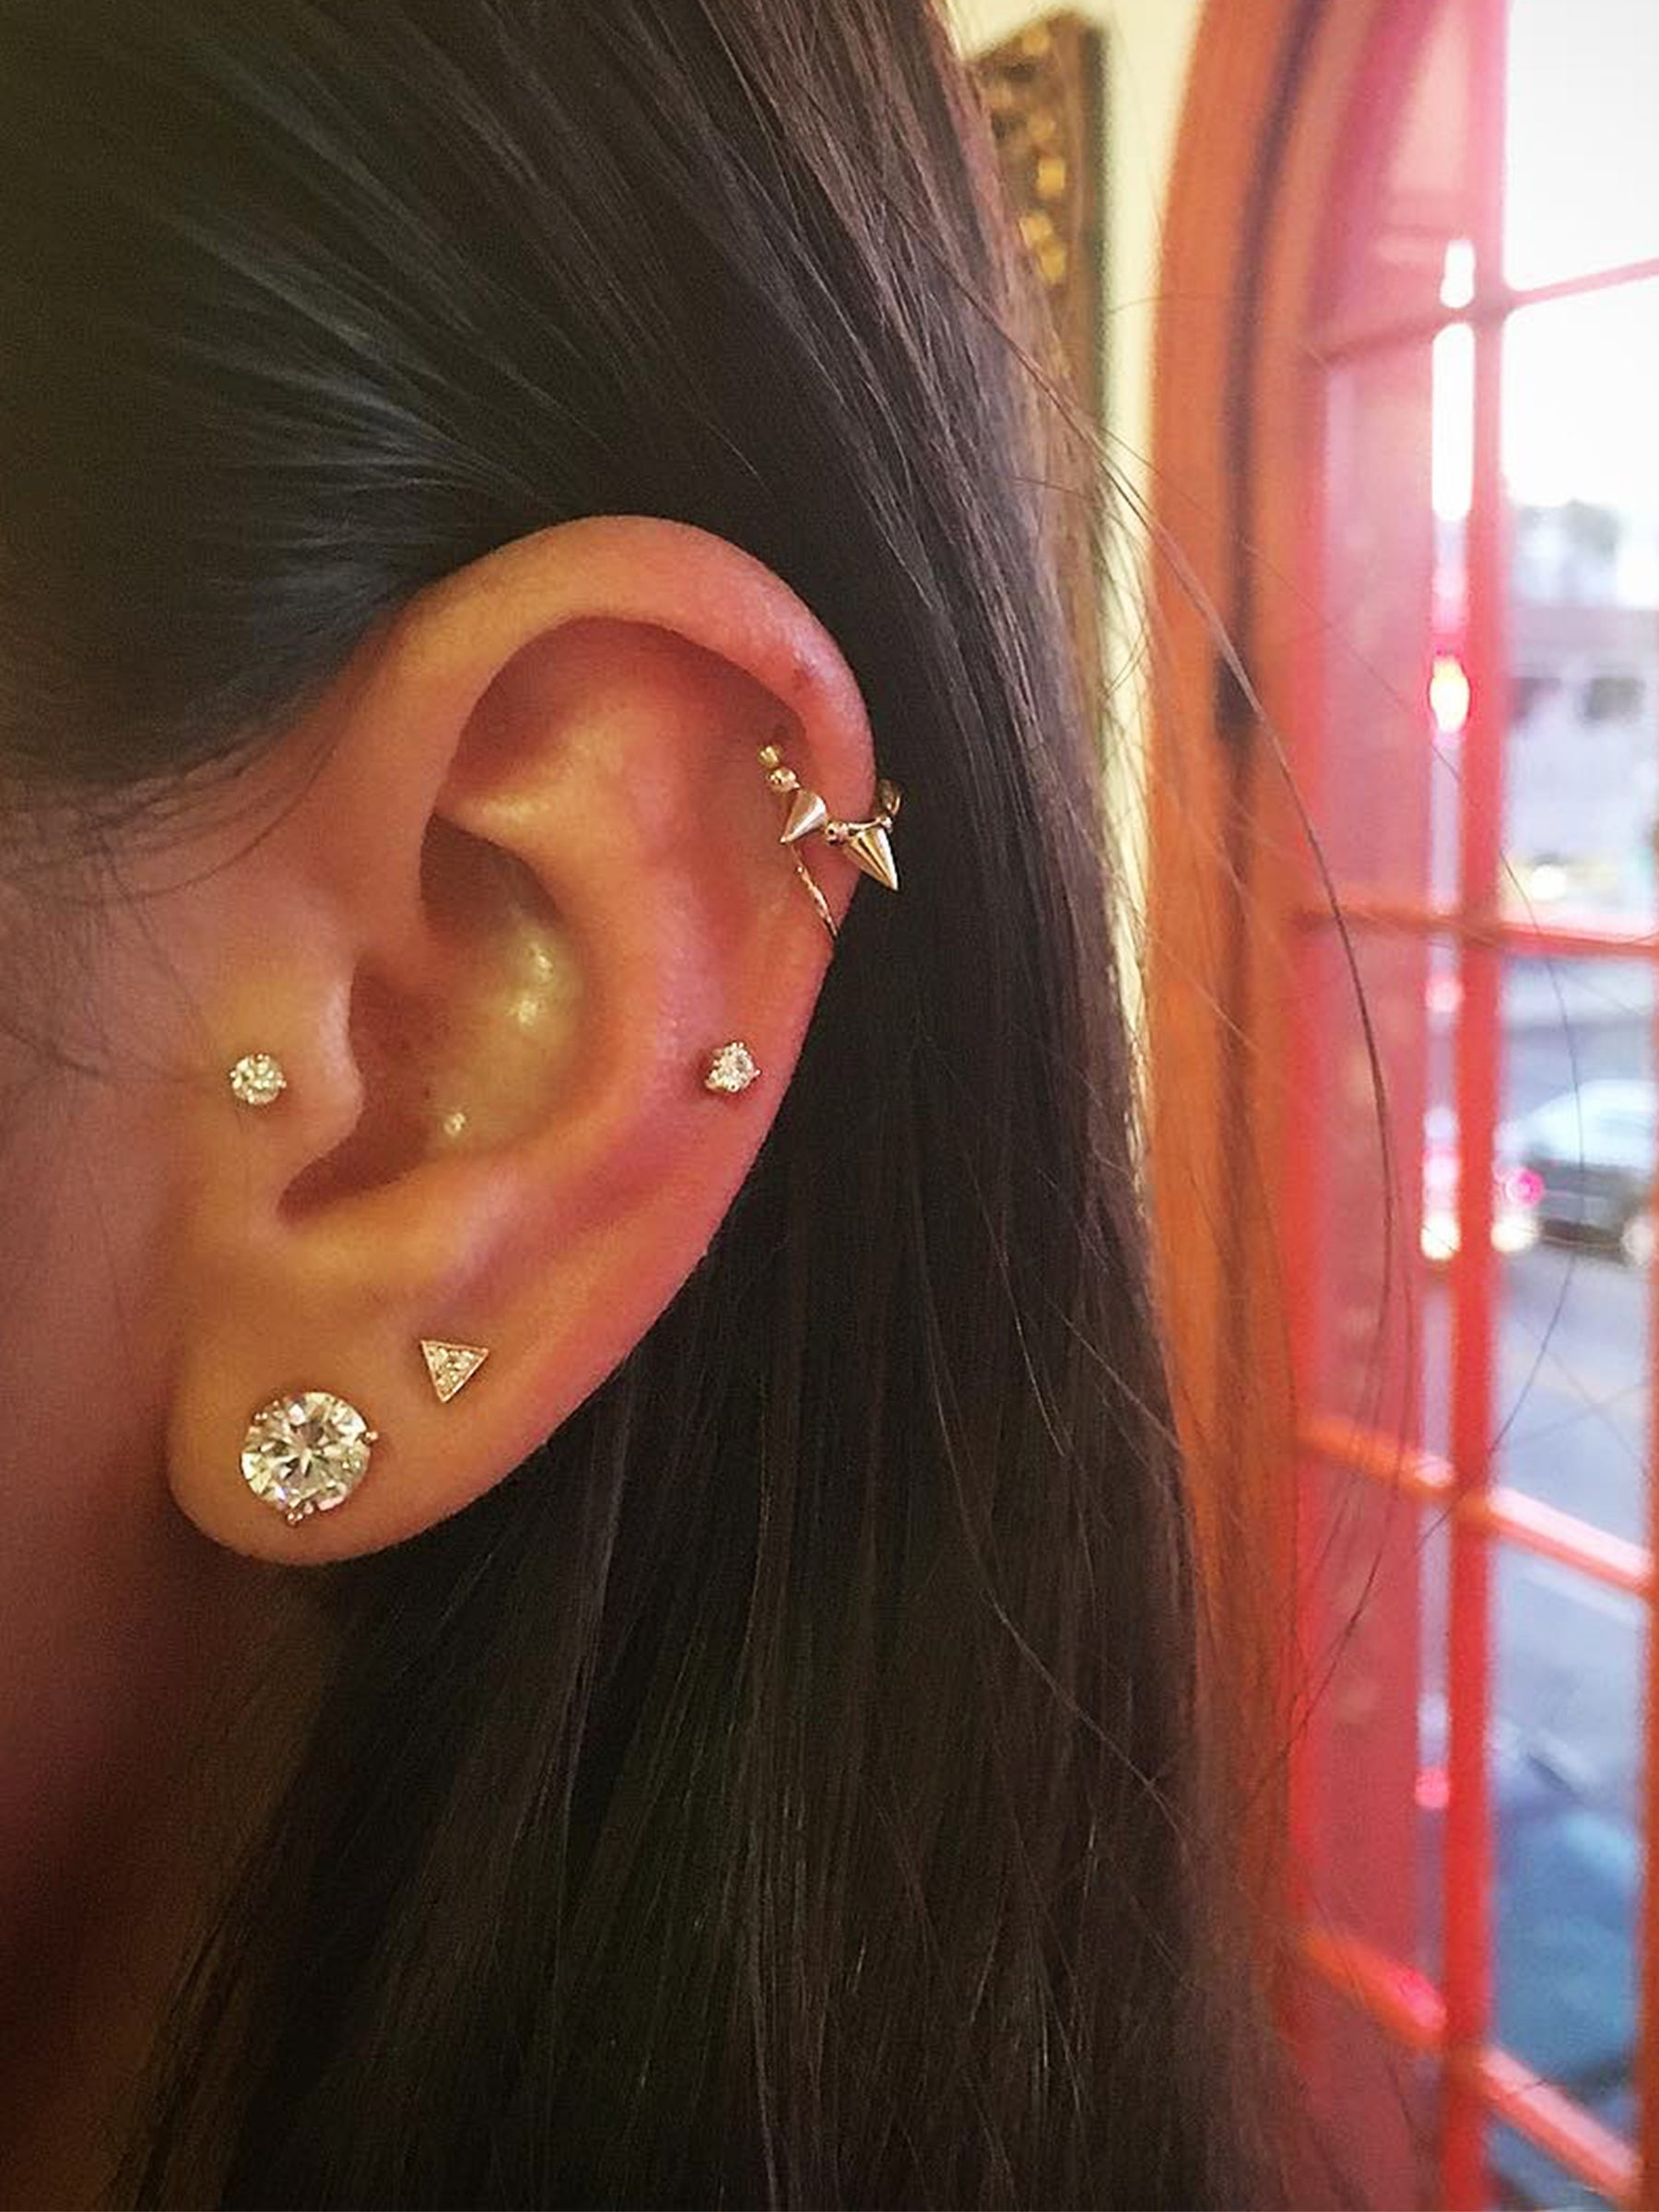 Ear piercing trend constellations pinterest photos pooptronica Choice Image